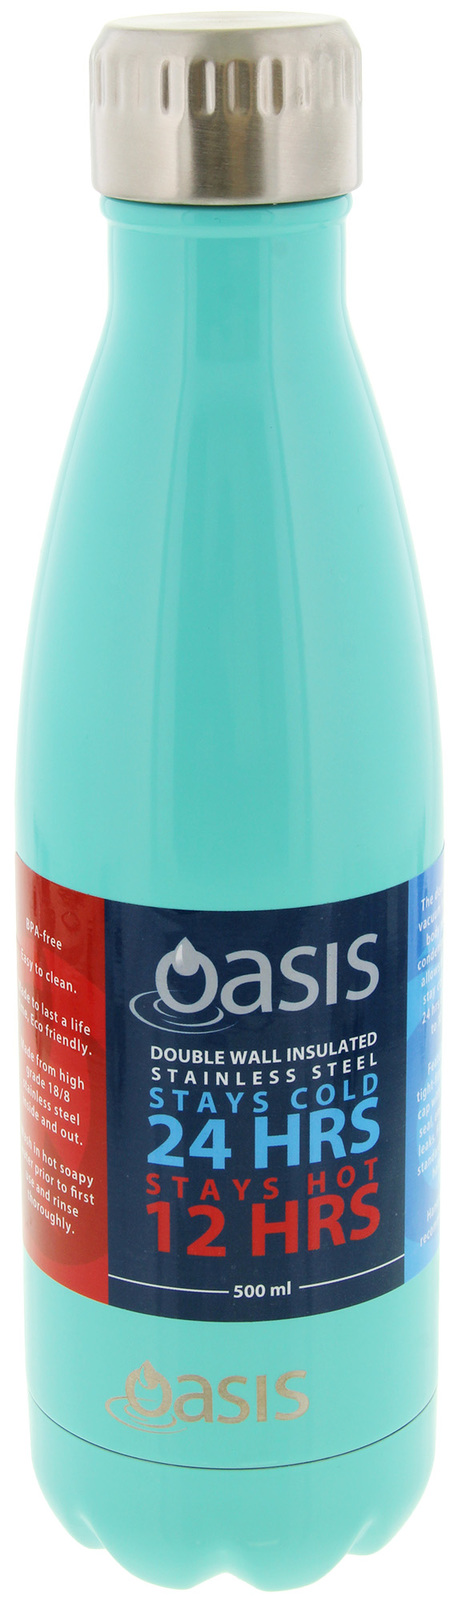 Oasis: Insulated Stainless Steel Drink Bottle - Spearmint (500ml) image